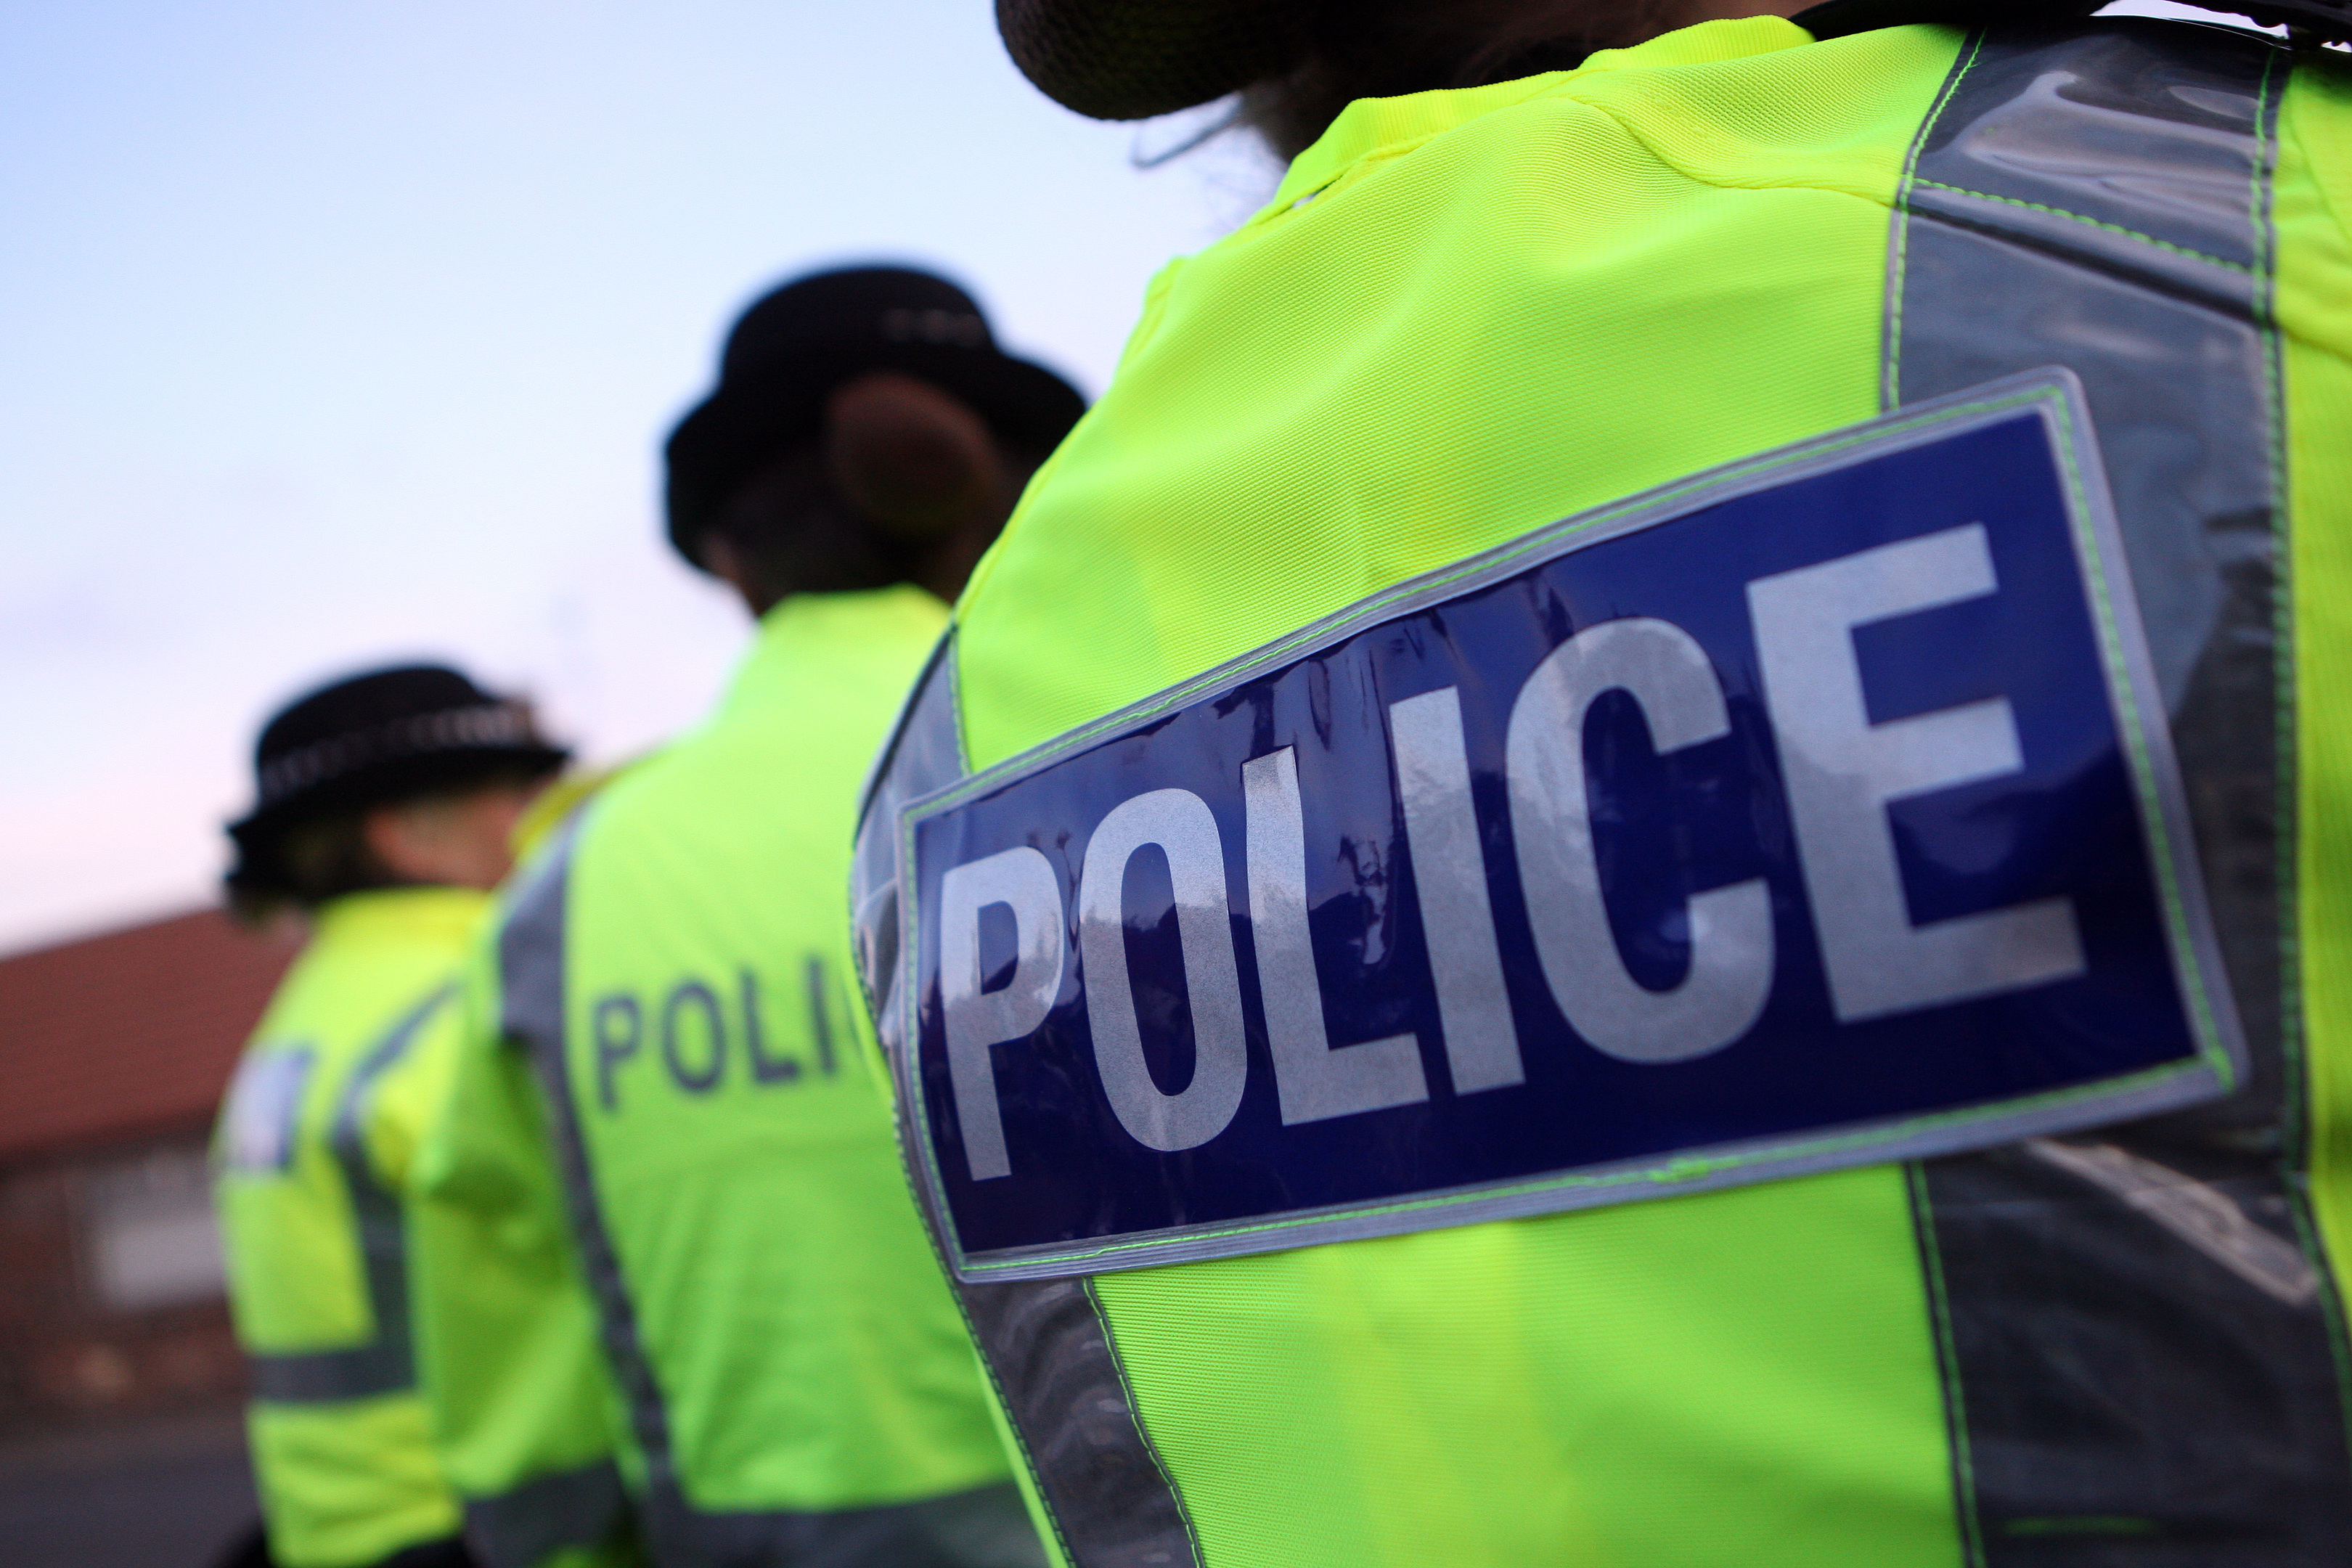 Police have seen an increase in violent crimes.